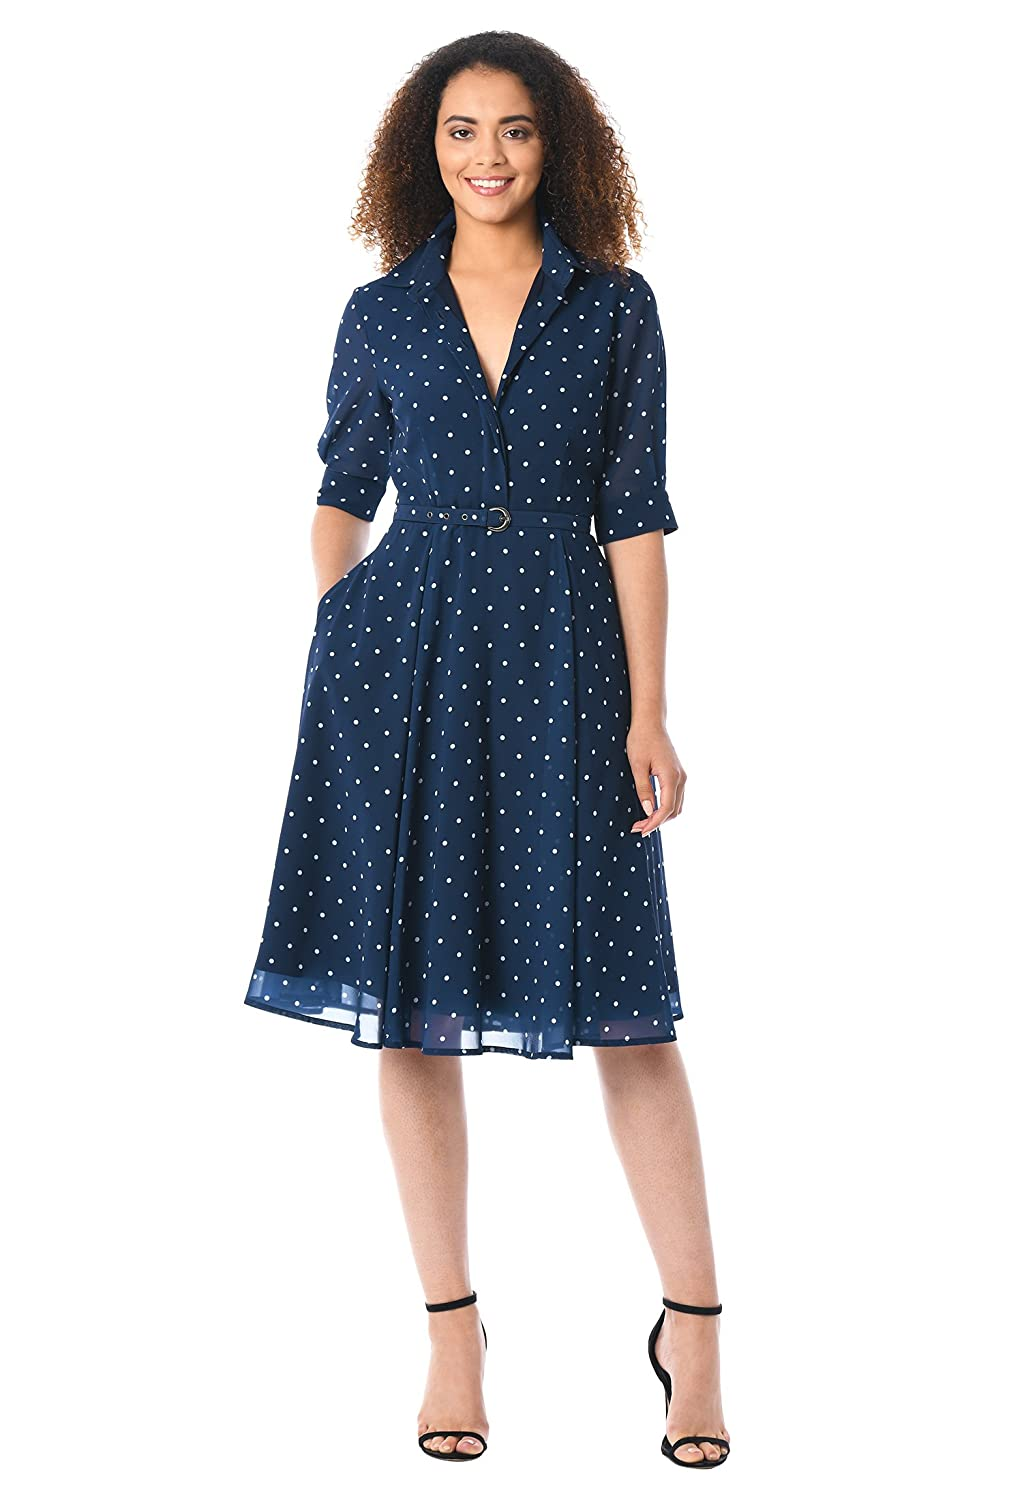 Vintage Tea Dresses, Floral Tea Dresses, Tea Length Dresses Polka dot Print Georgette eShakti Womens Belted Shirtdress $69.95 AT vintagedancer.com